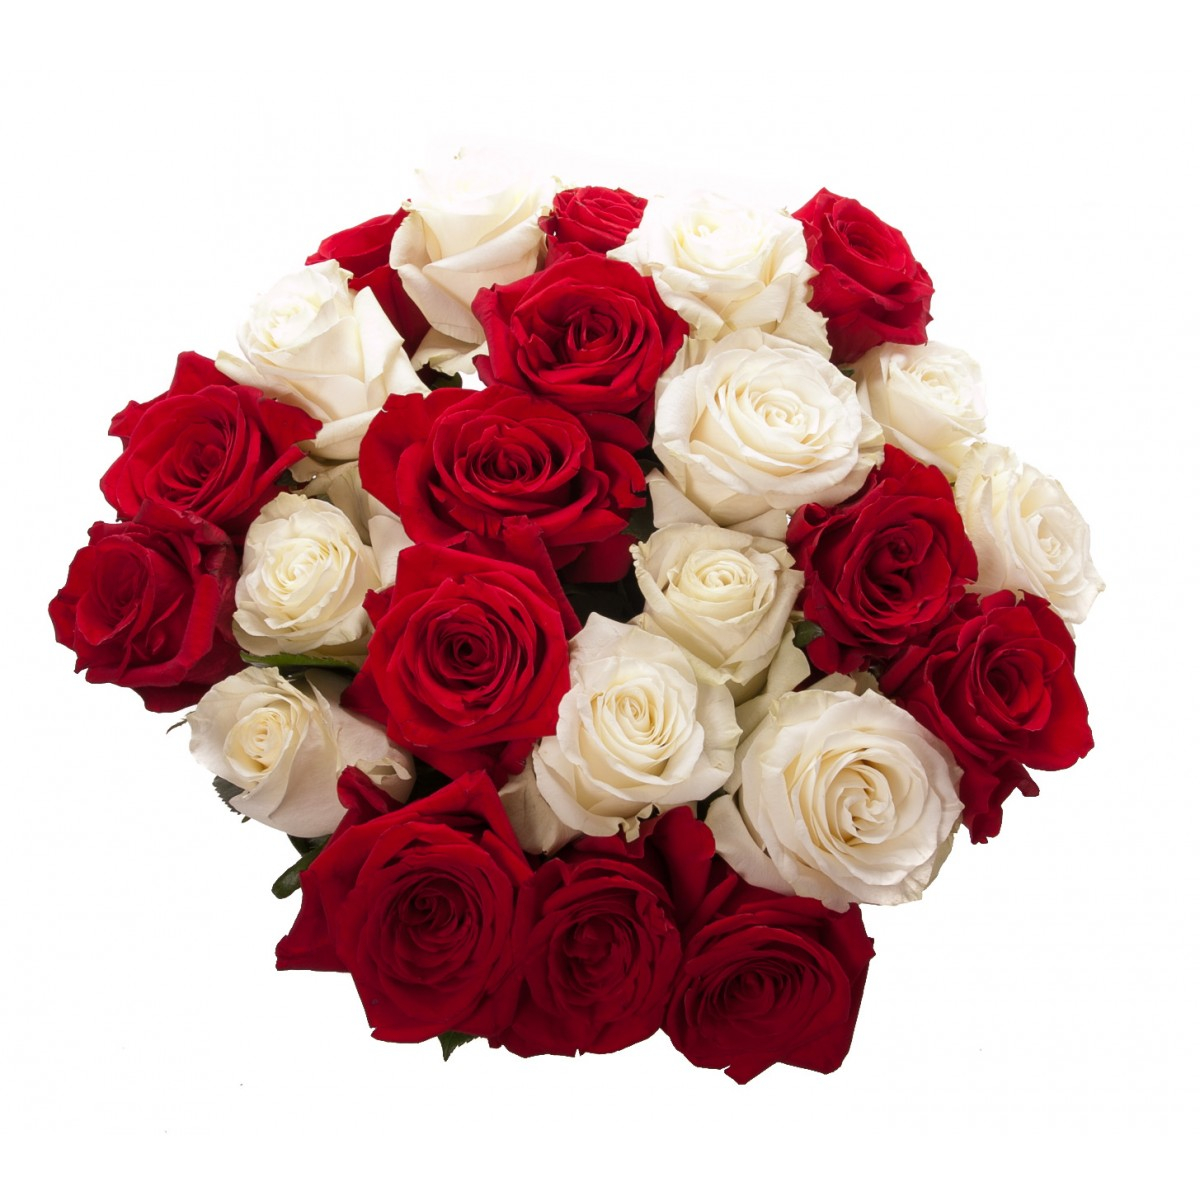 Valentines Day Rose Bouquet Red and White Flower Muse